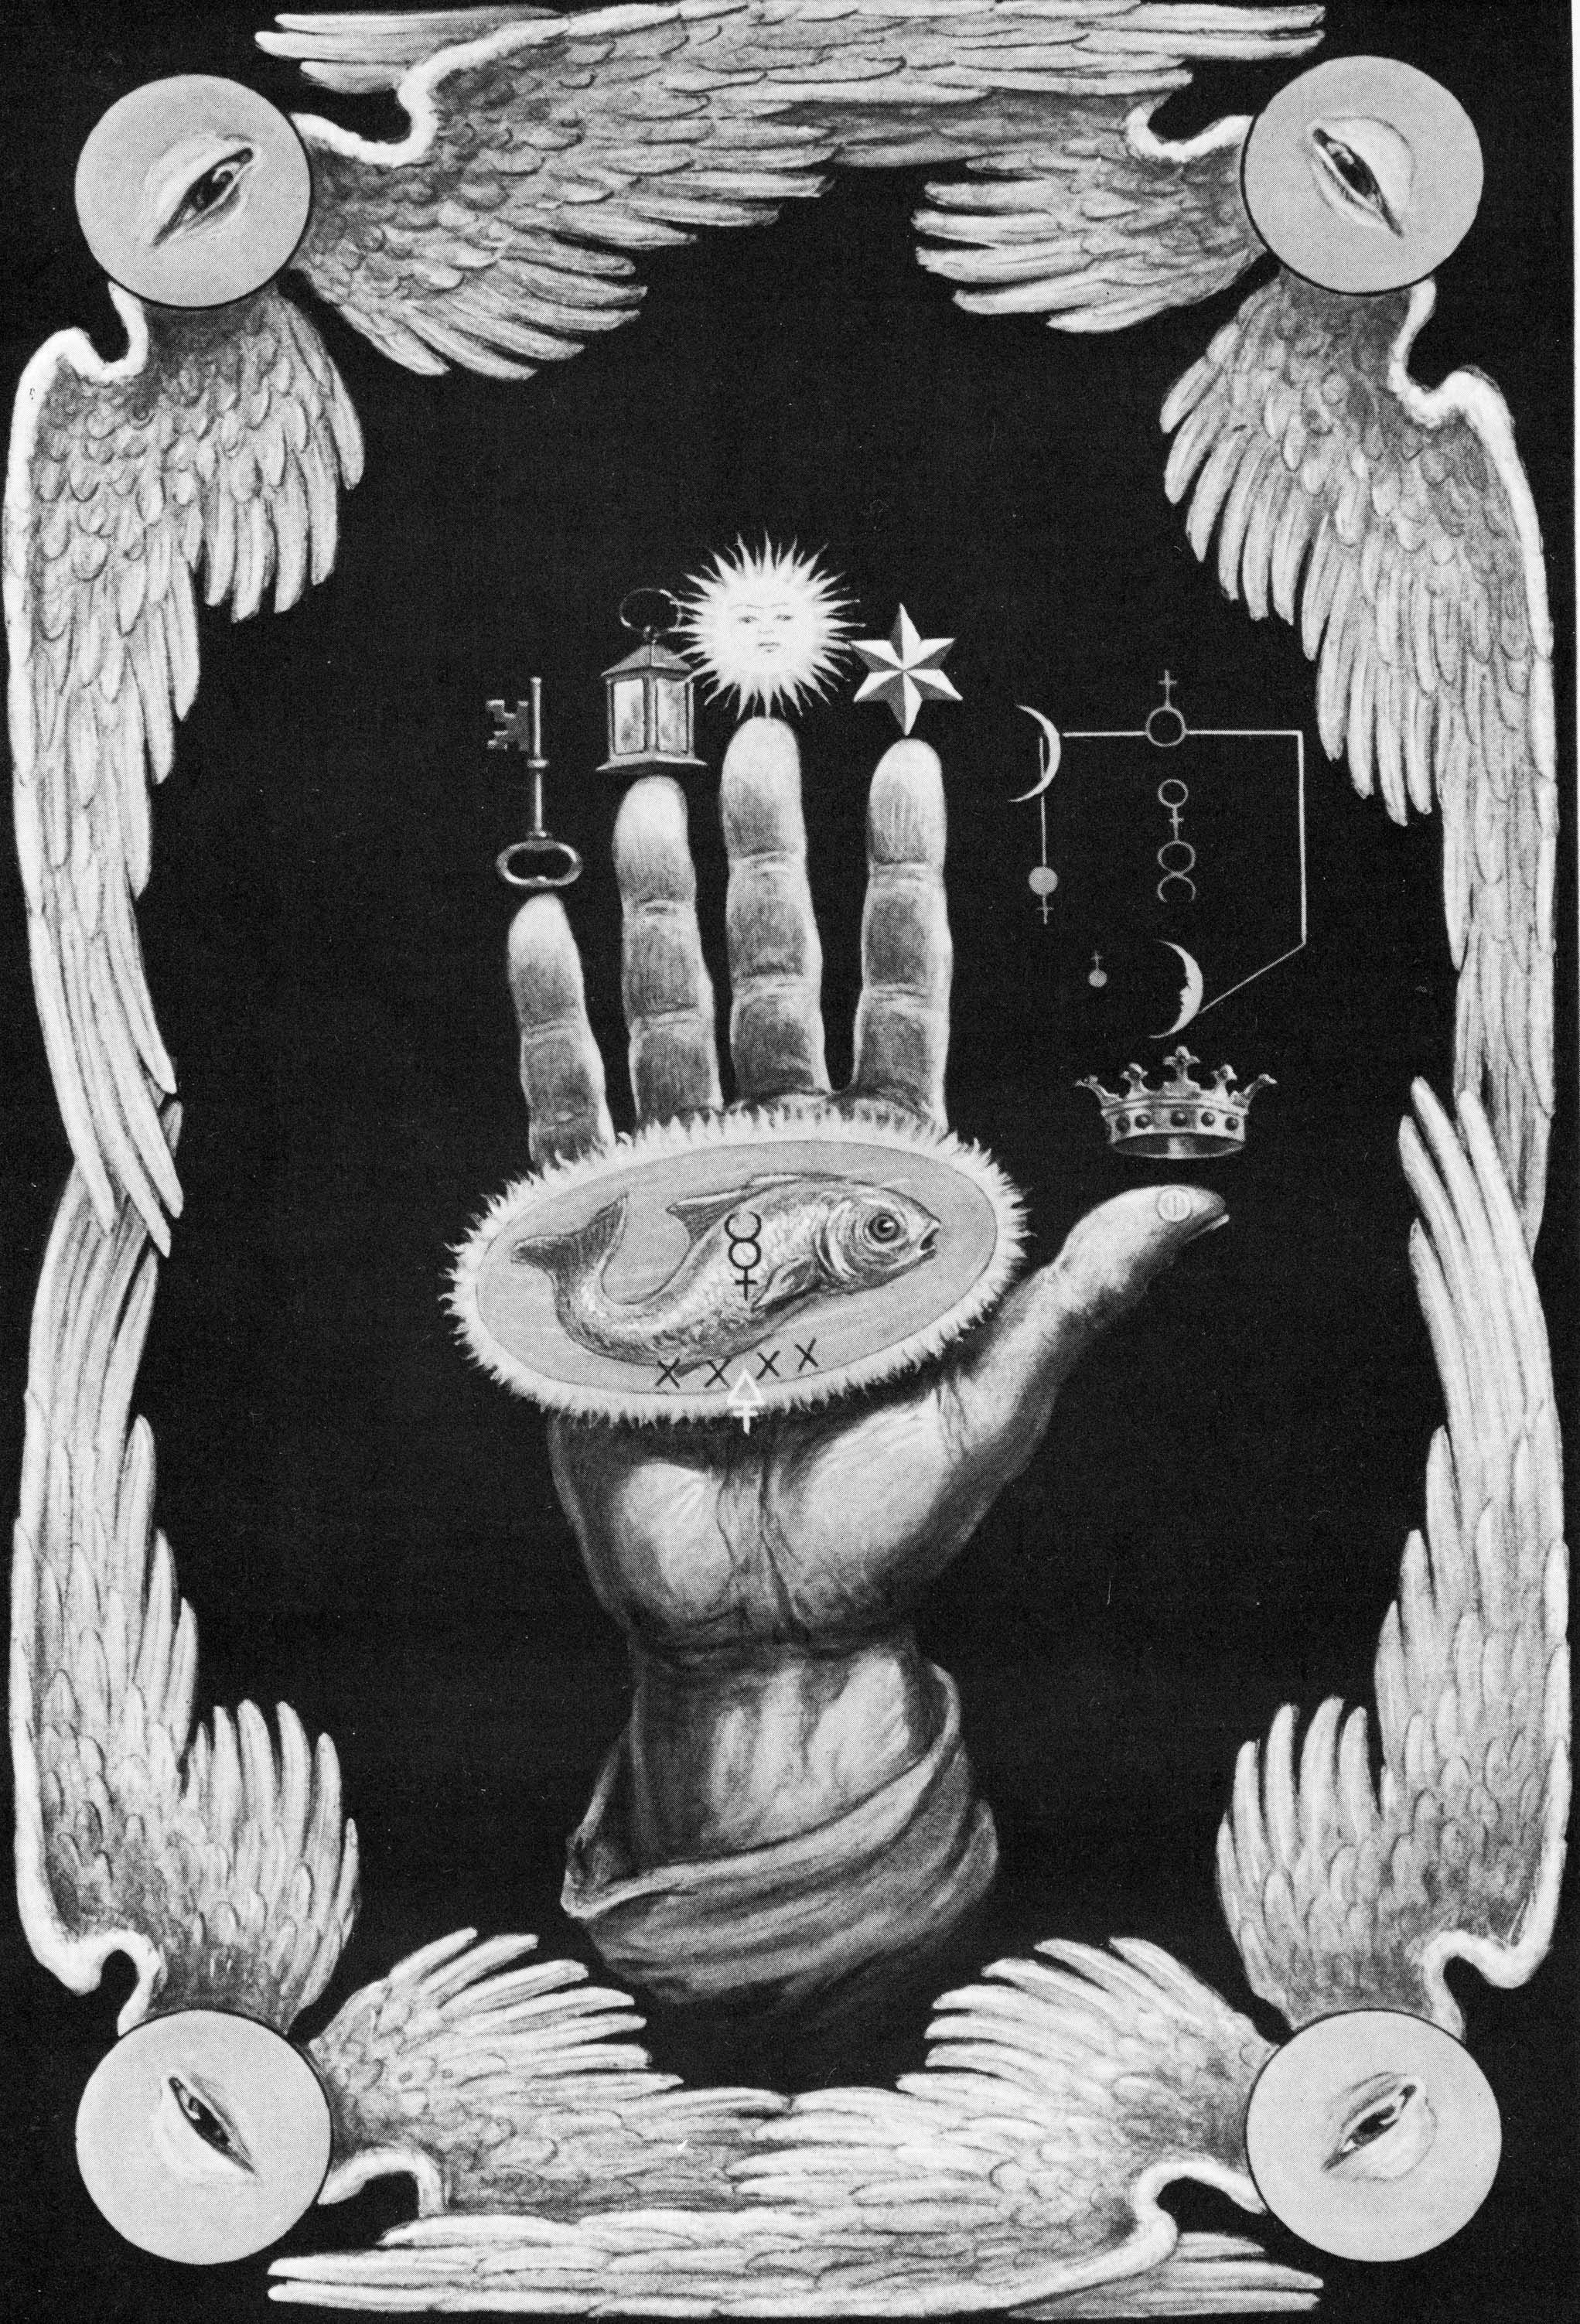 The Hand of the Mysteries from The Secret Teachings of All Ages by Manly P Hall Gizemlerin Eli Her yaÅŸtaki Gizli –ÄŸretiler den Manly P